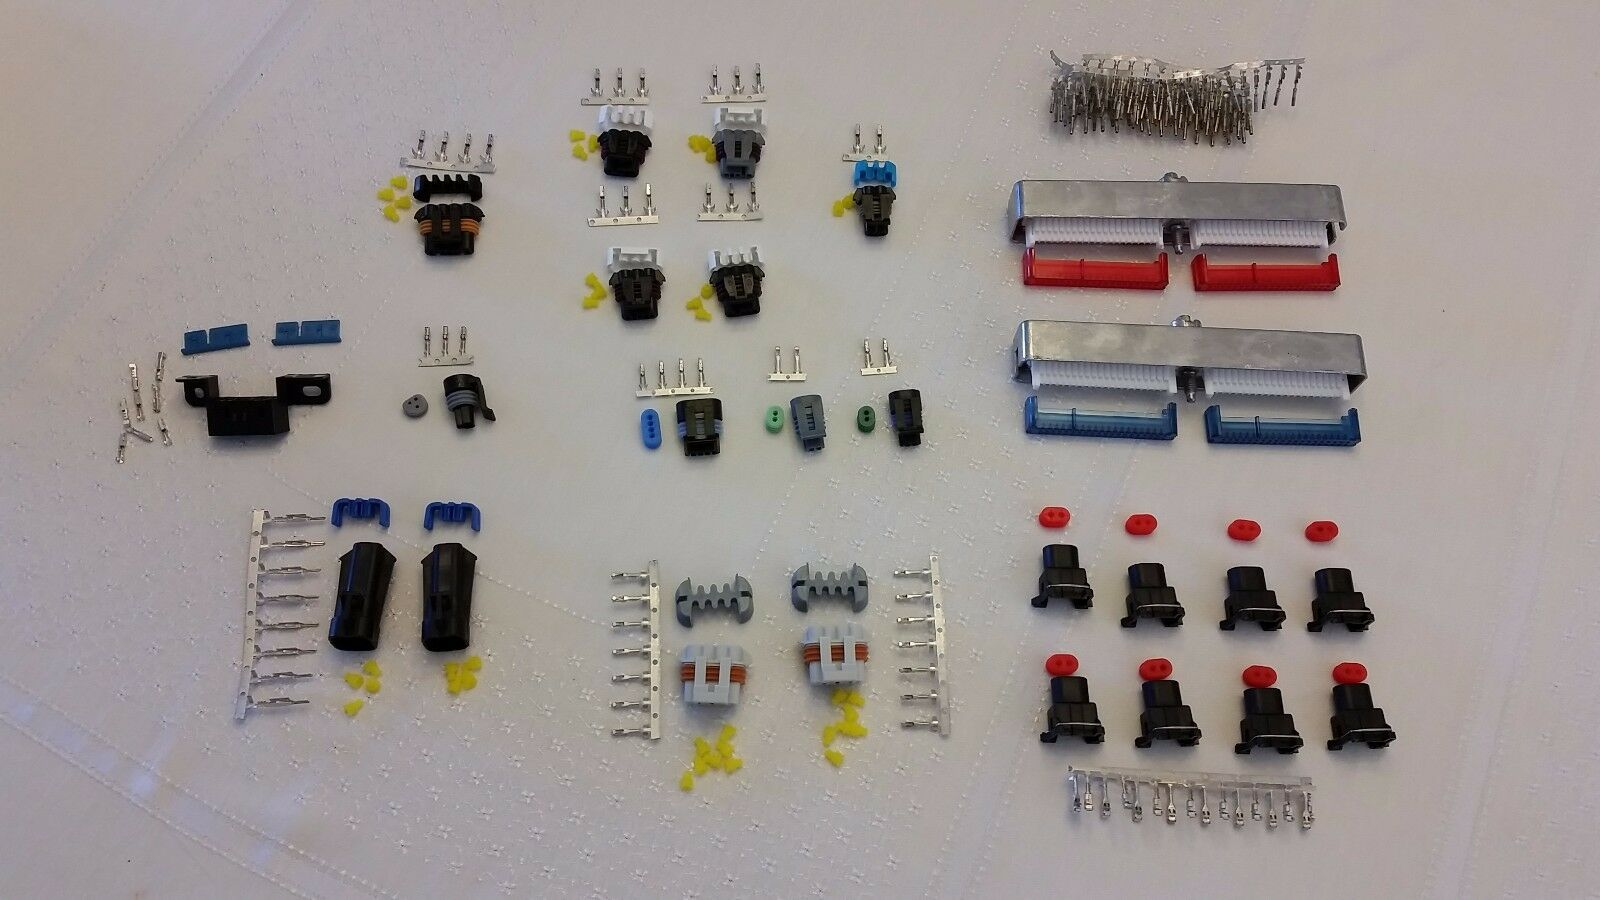 Gm Wiring Harness Repair Kit Electrical Diagrams Ls1 Lsx 24x Engine Diy Build Chevy Toyota Wire